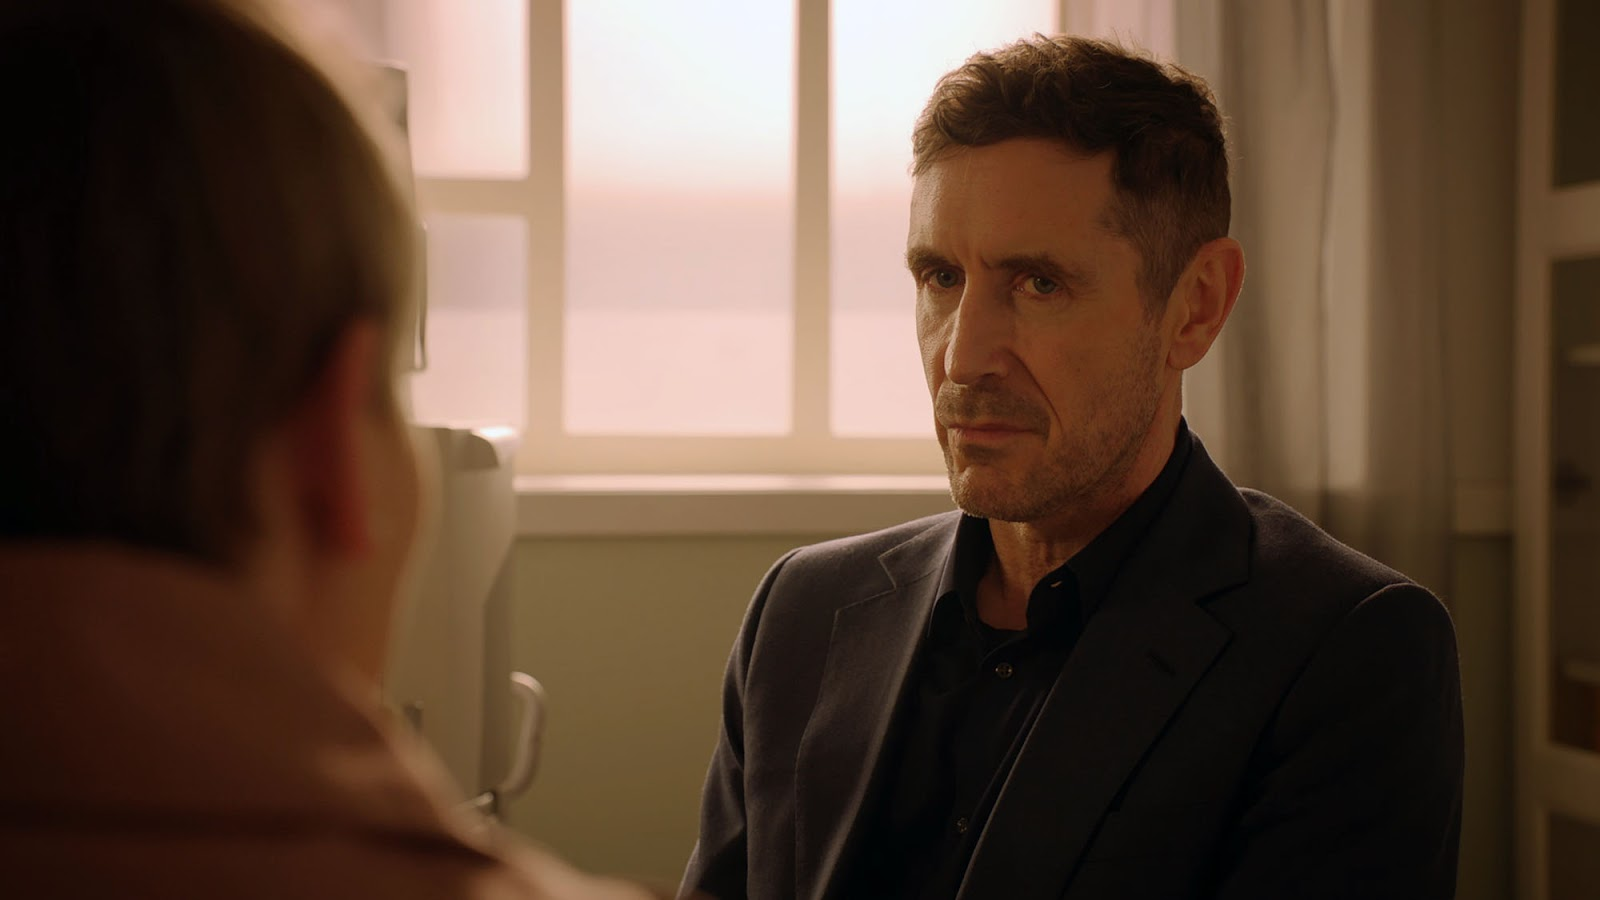 Holby City series 20 episode 26 'Fallen Idol'